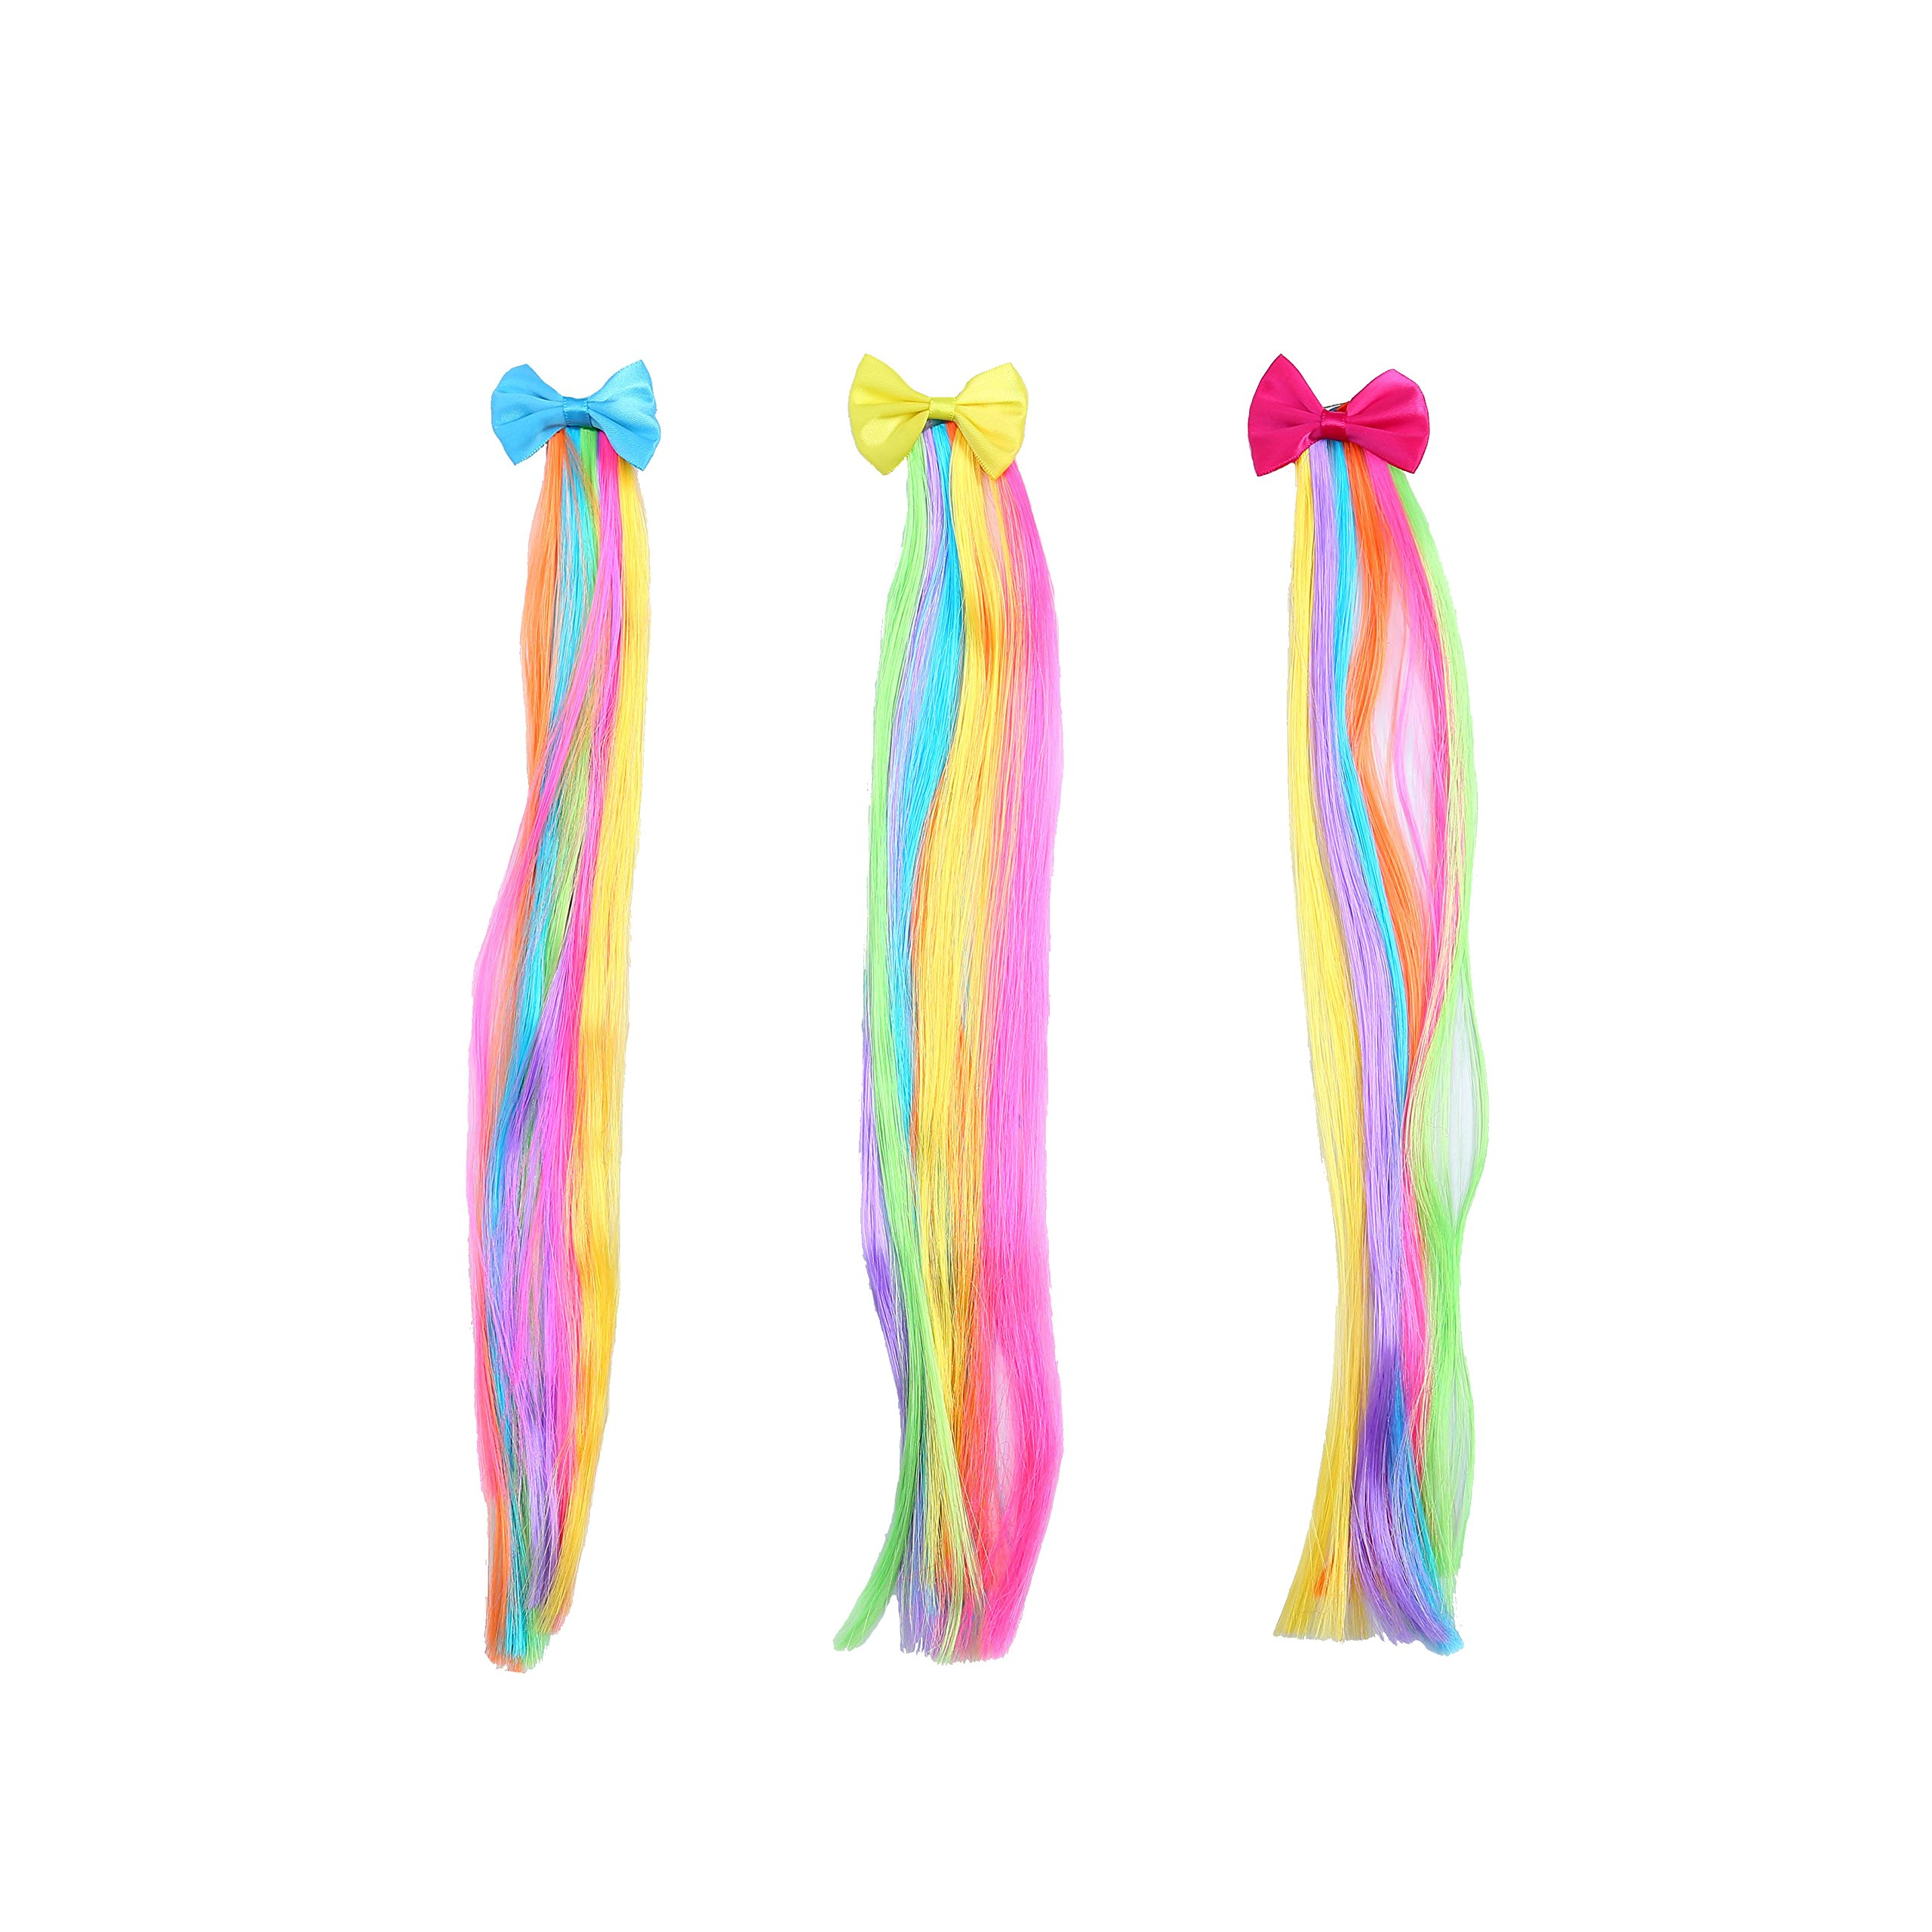 Bevan 3 pieces Bow Hair Clips With Rainbow Wigs Barrettes For Teen Girls Kids Toddlers Party or Celebrations Hair Decoration Accessories,Blue,Yellow,Fuchsia,Mixed 3 Colors